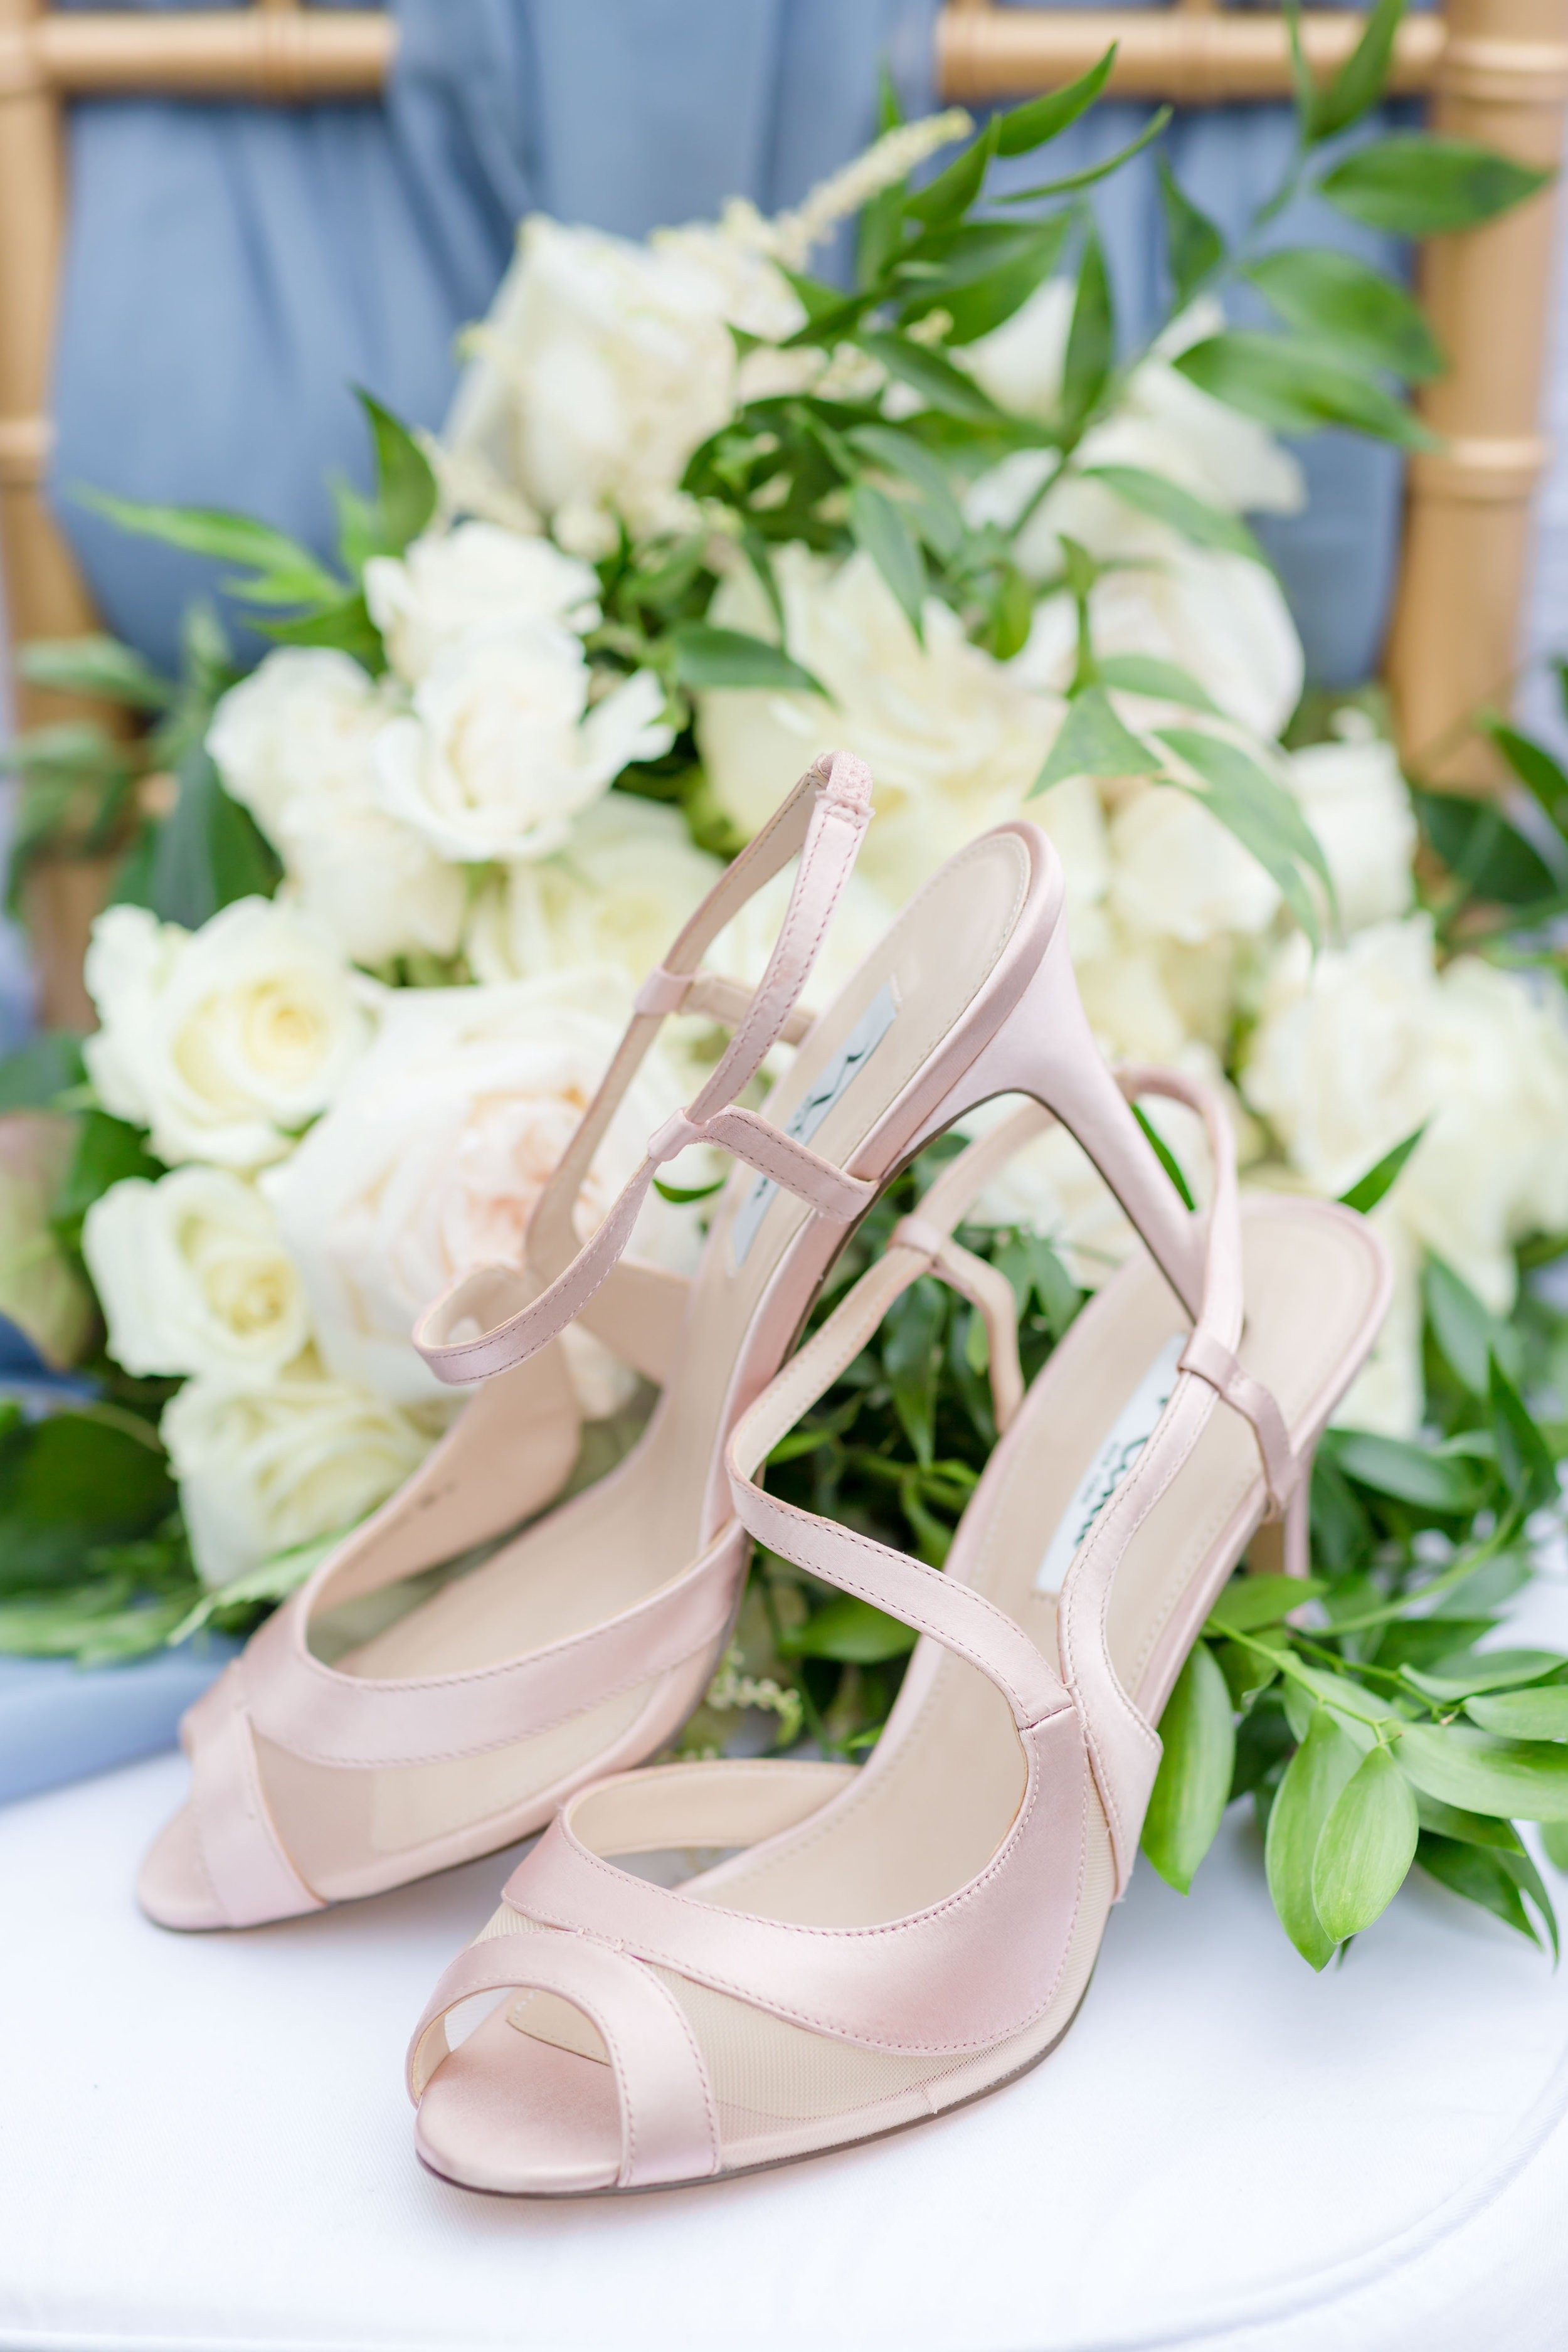 ScarlettExpressions-StyledShoot-Shoes_Bouquet-22.jpg